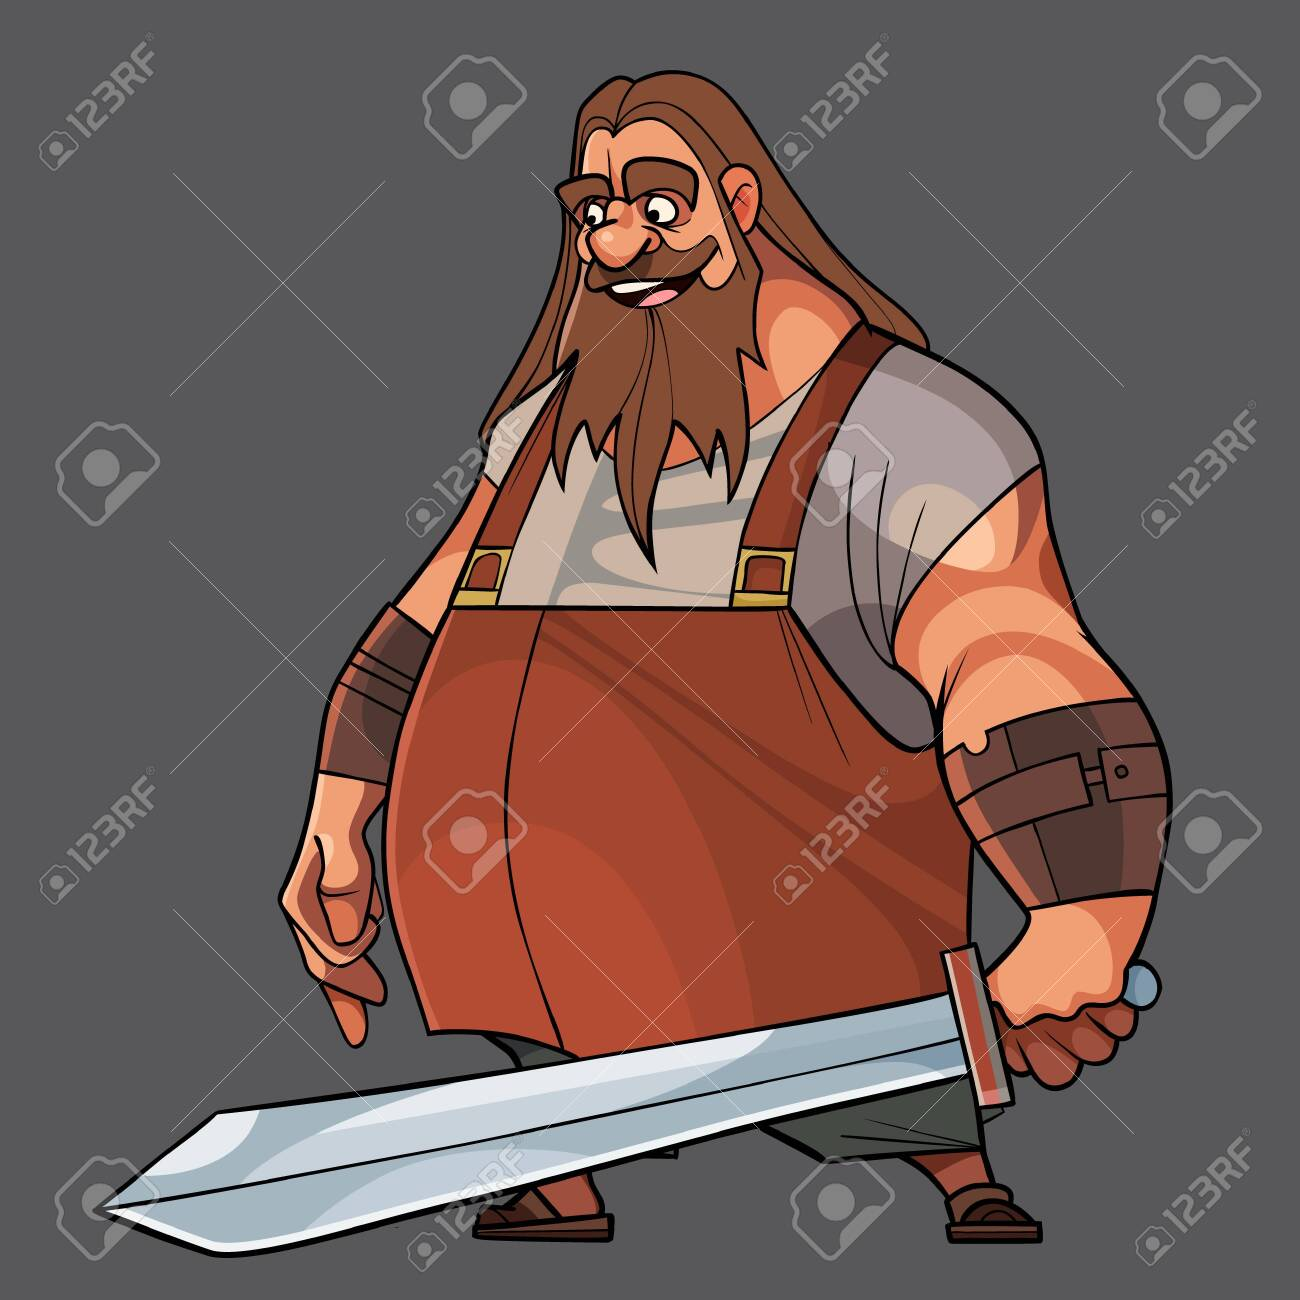 Cartoon bearded man standing with a sword in his hand. Vector image - 149942359